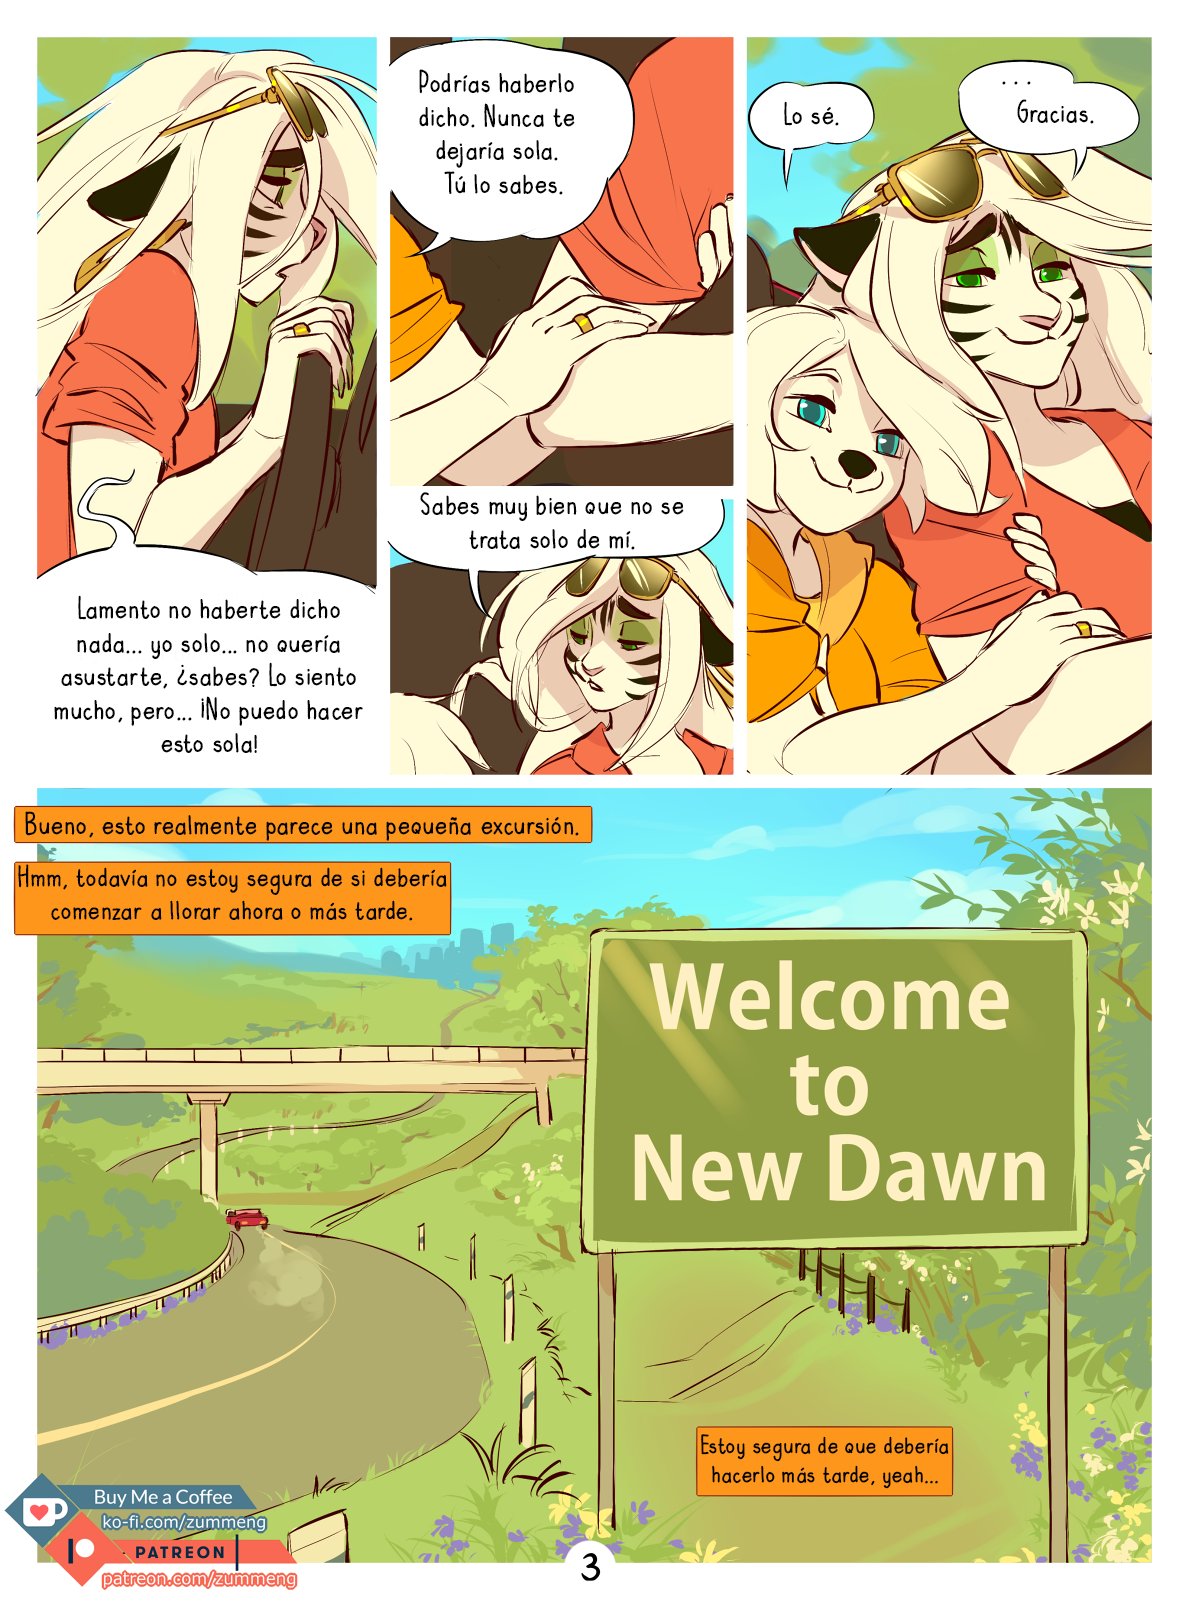 Welcome To New Dawn Pagina 3.png